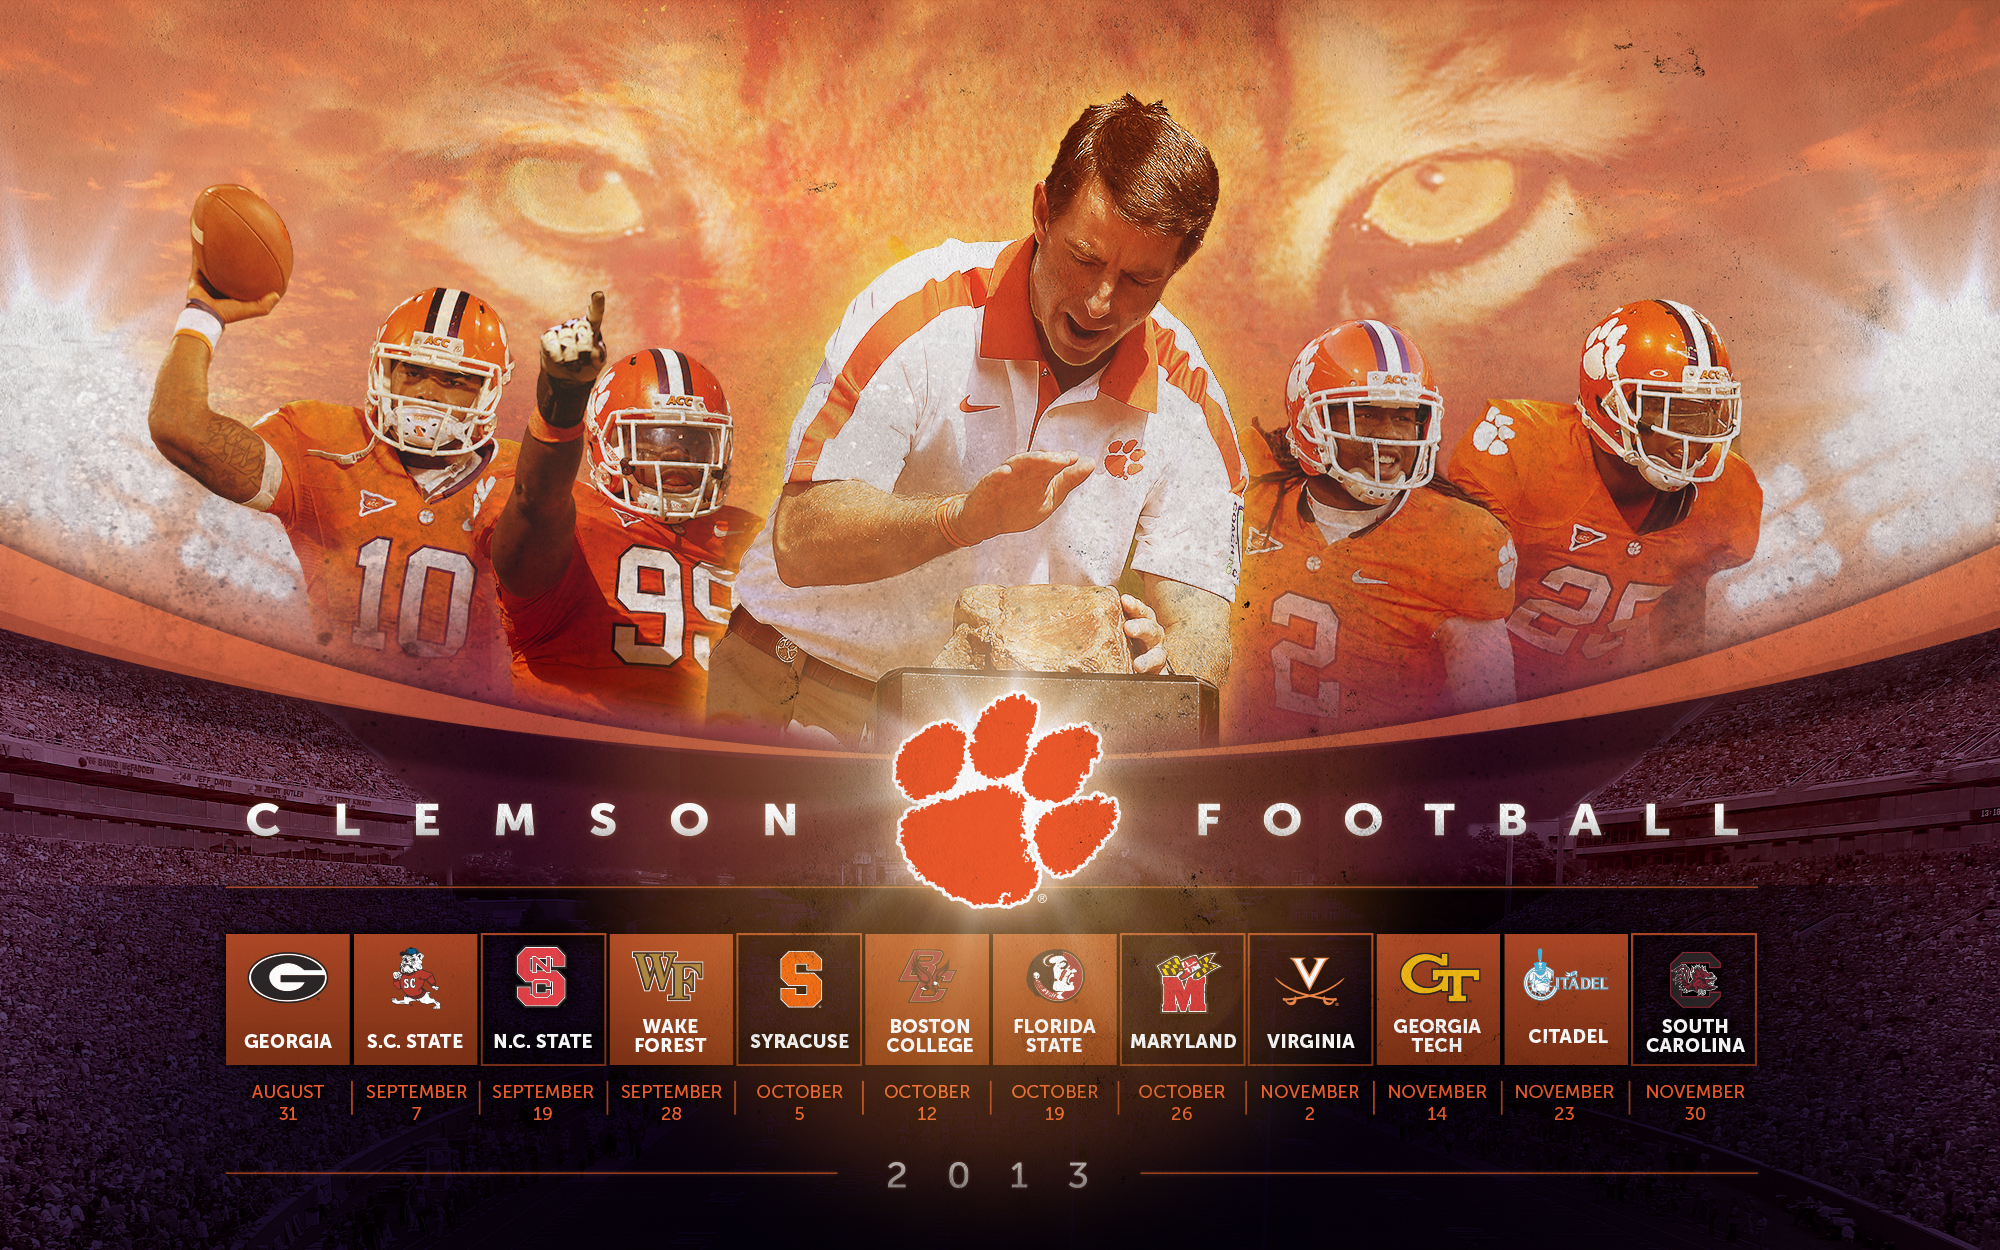 Clemson Tigers Wallpaper Images Pictures   Becuo 2000x1250